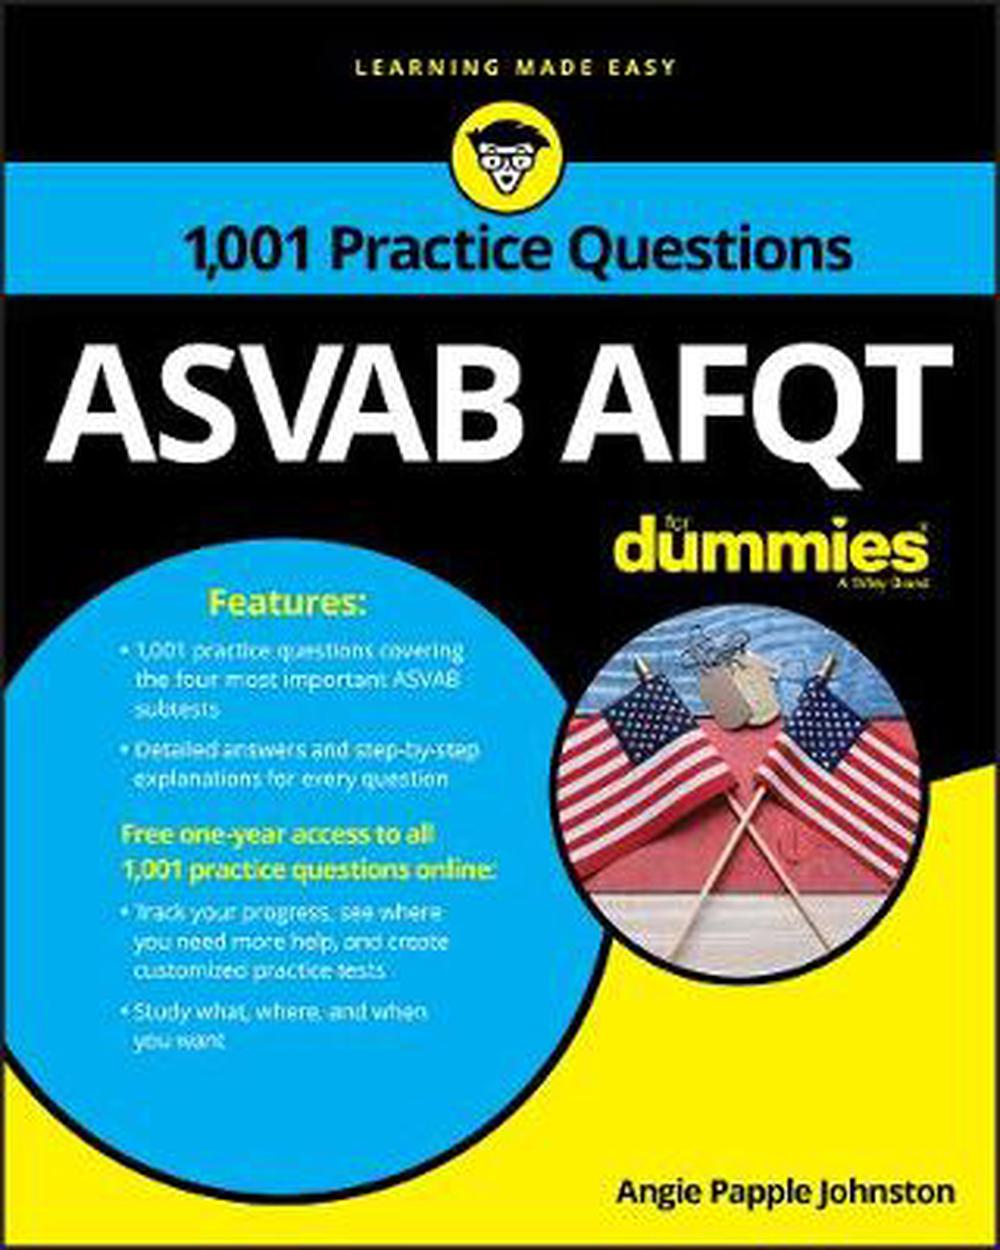 1,001 Asvab Afqt Practice Questions for Dummies + Otb